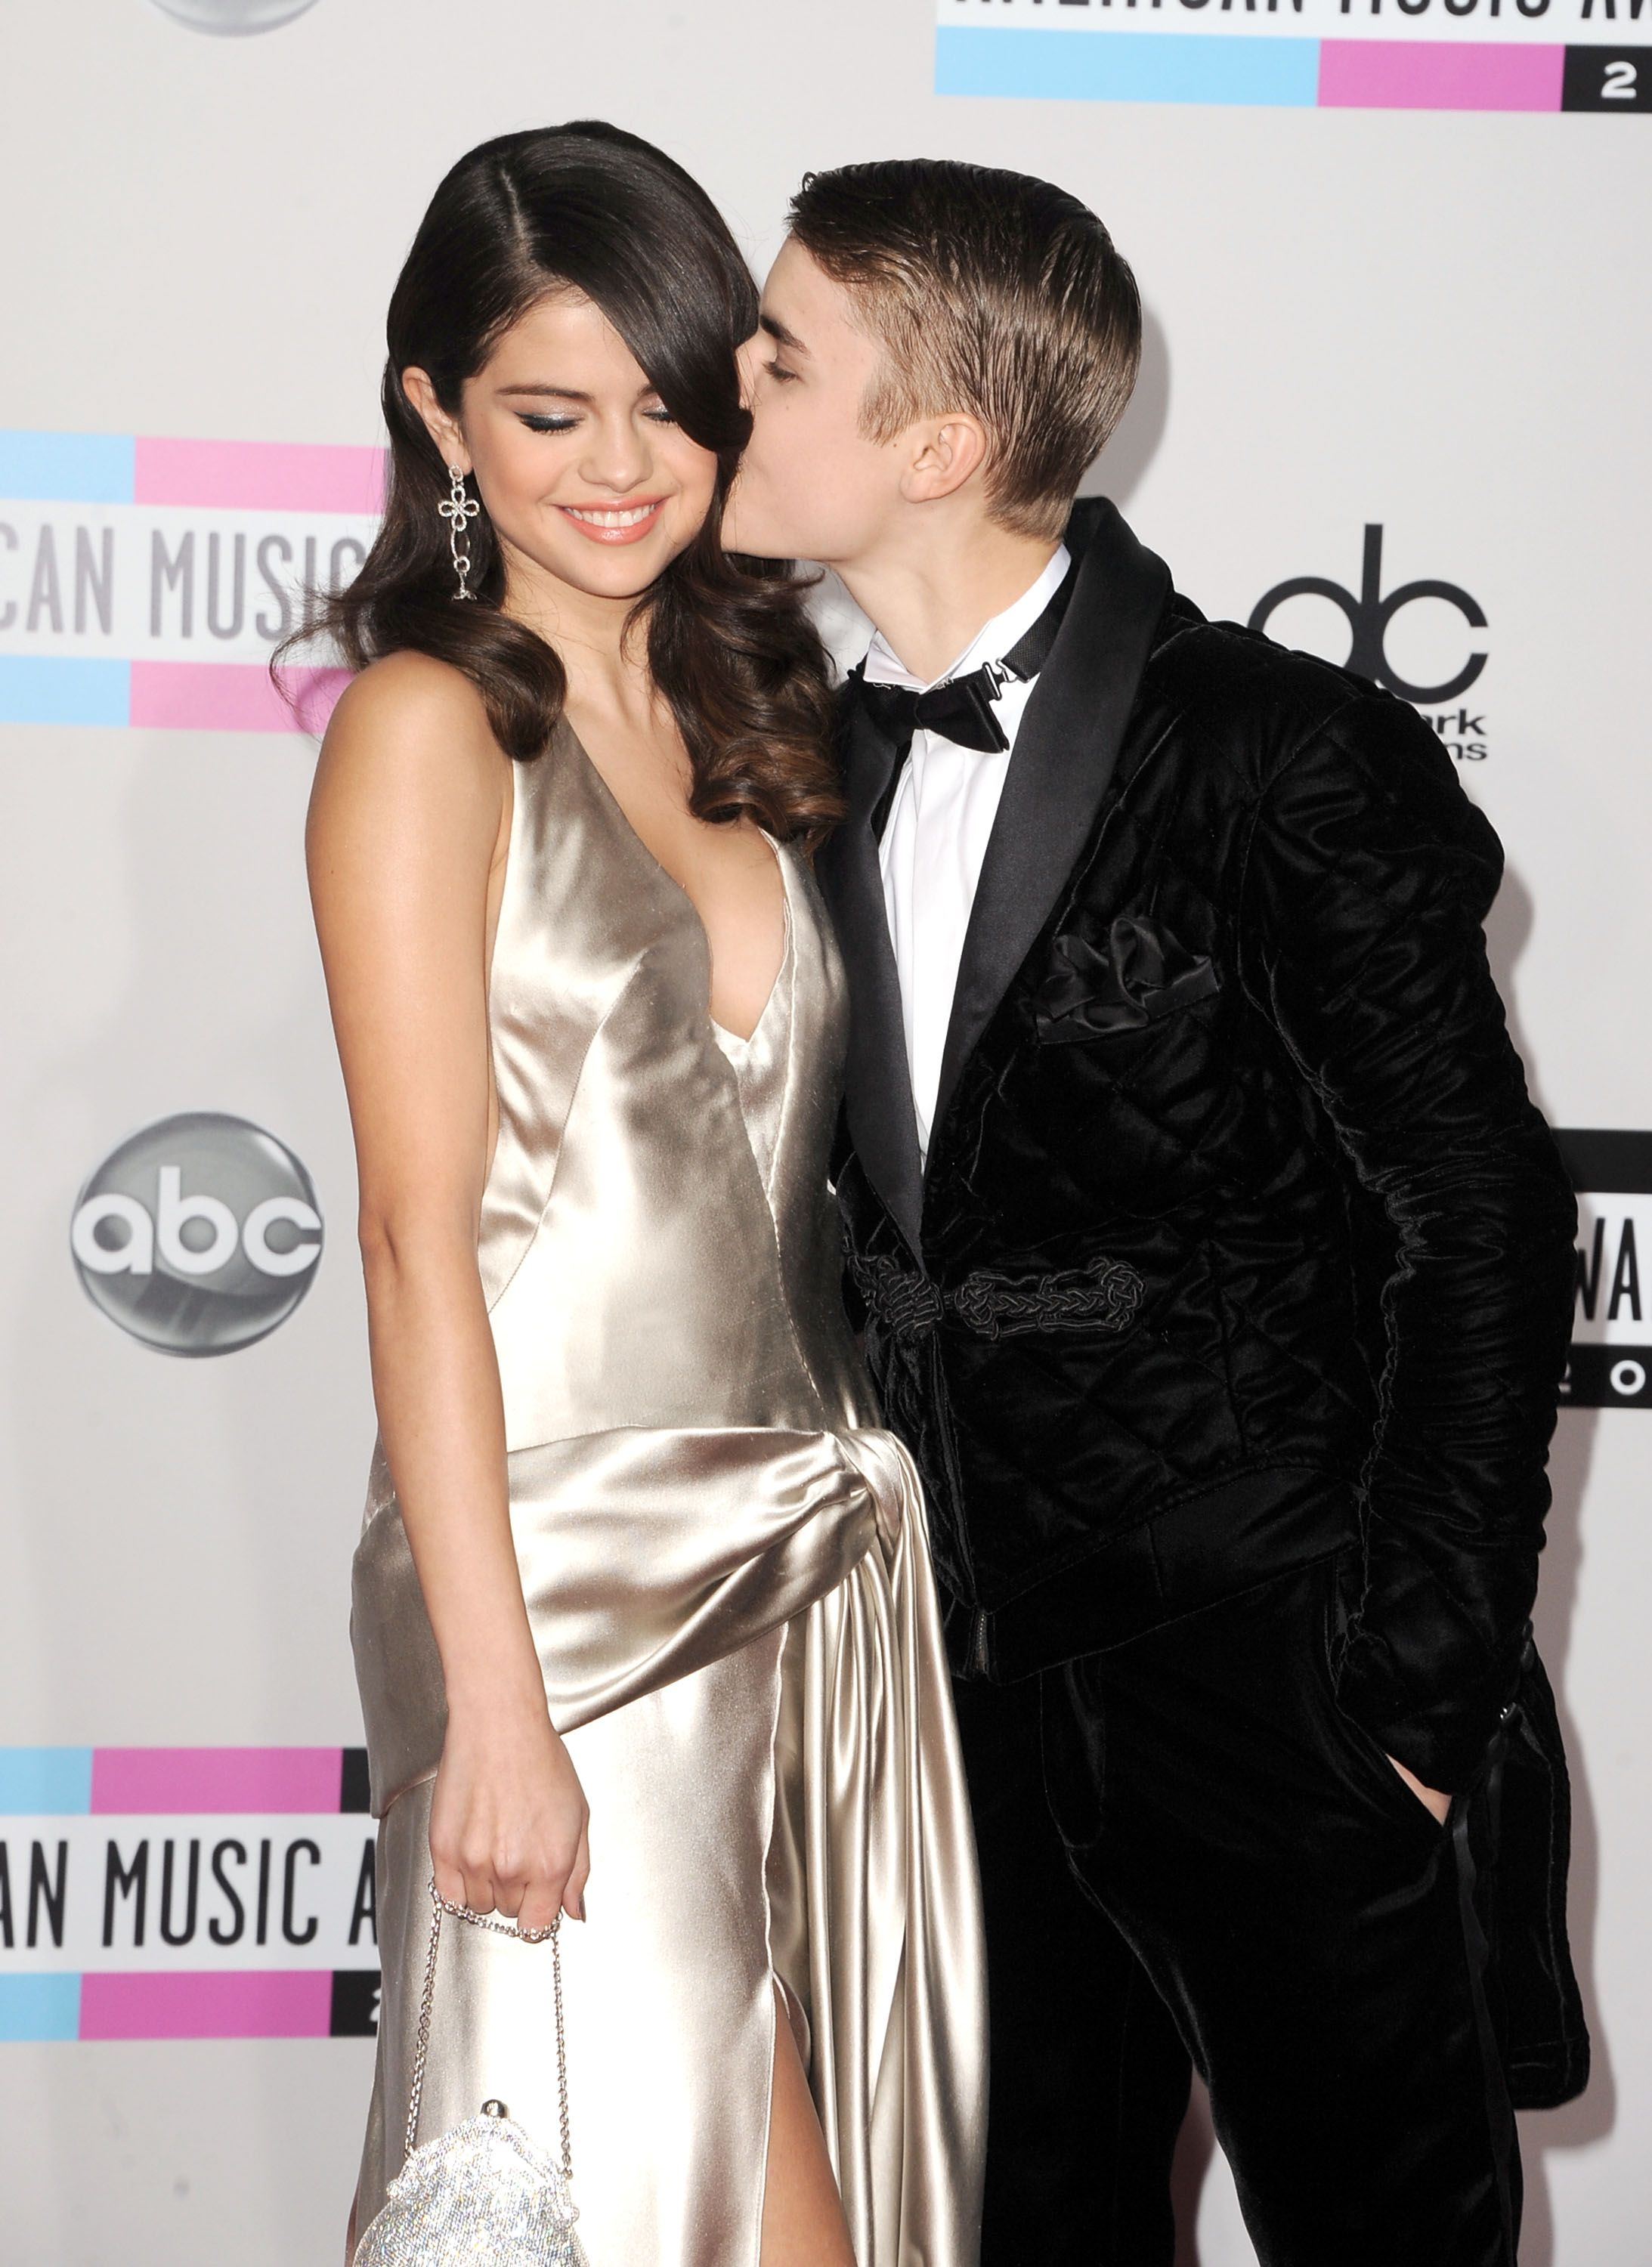 Is justin bieber dating selena gomez